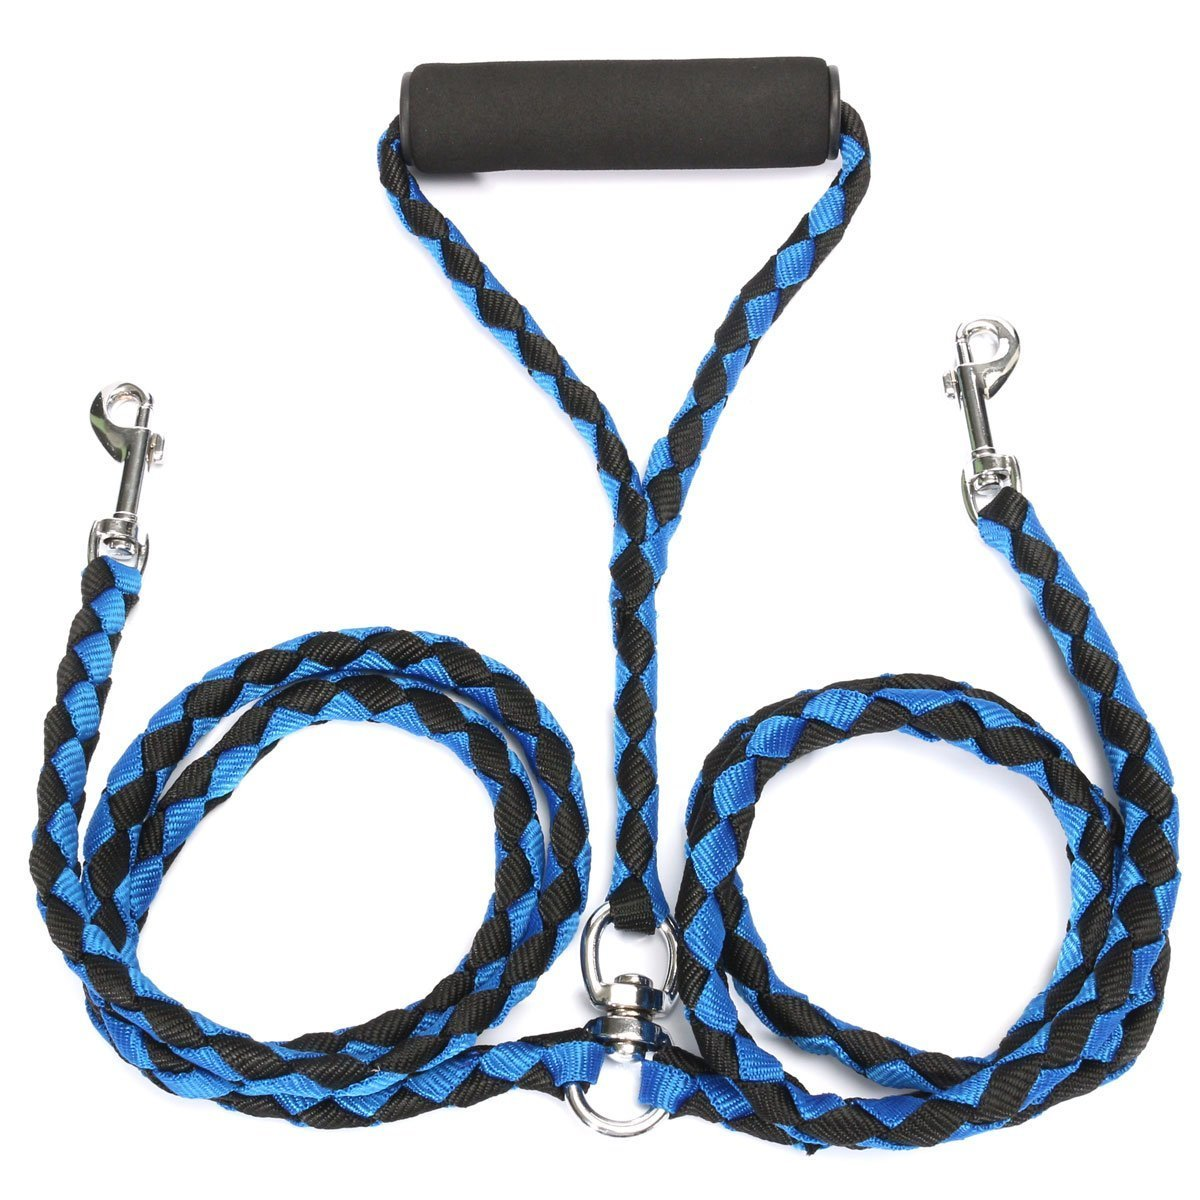 Double Dog Leads for Walking 2 Dogs, No Tangle Dual Dog Lead with Soft Foam Handle for Walking and Training Large/Medium/Small Dogs (black/blue) by Crazy Felix